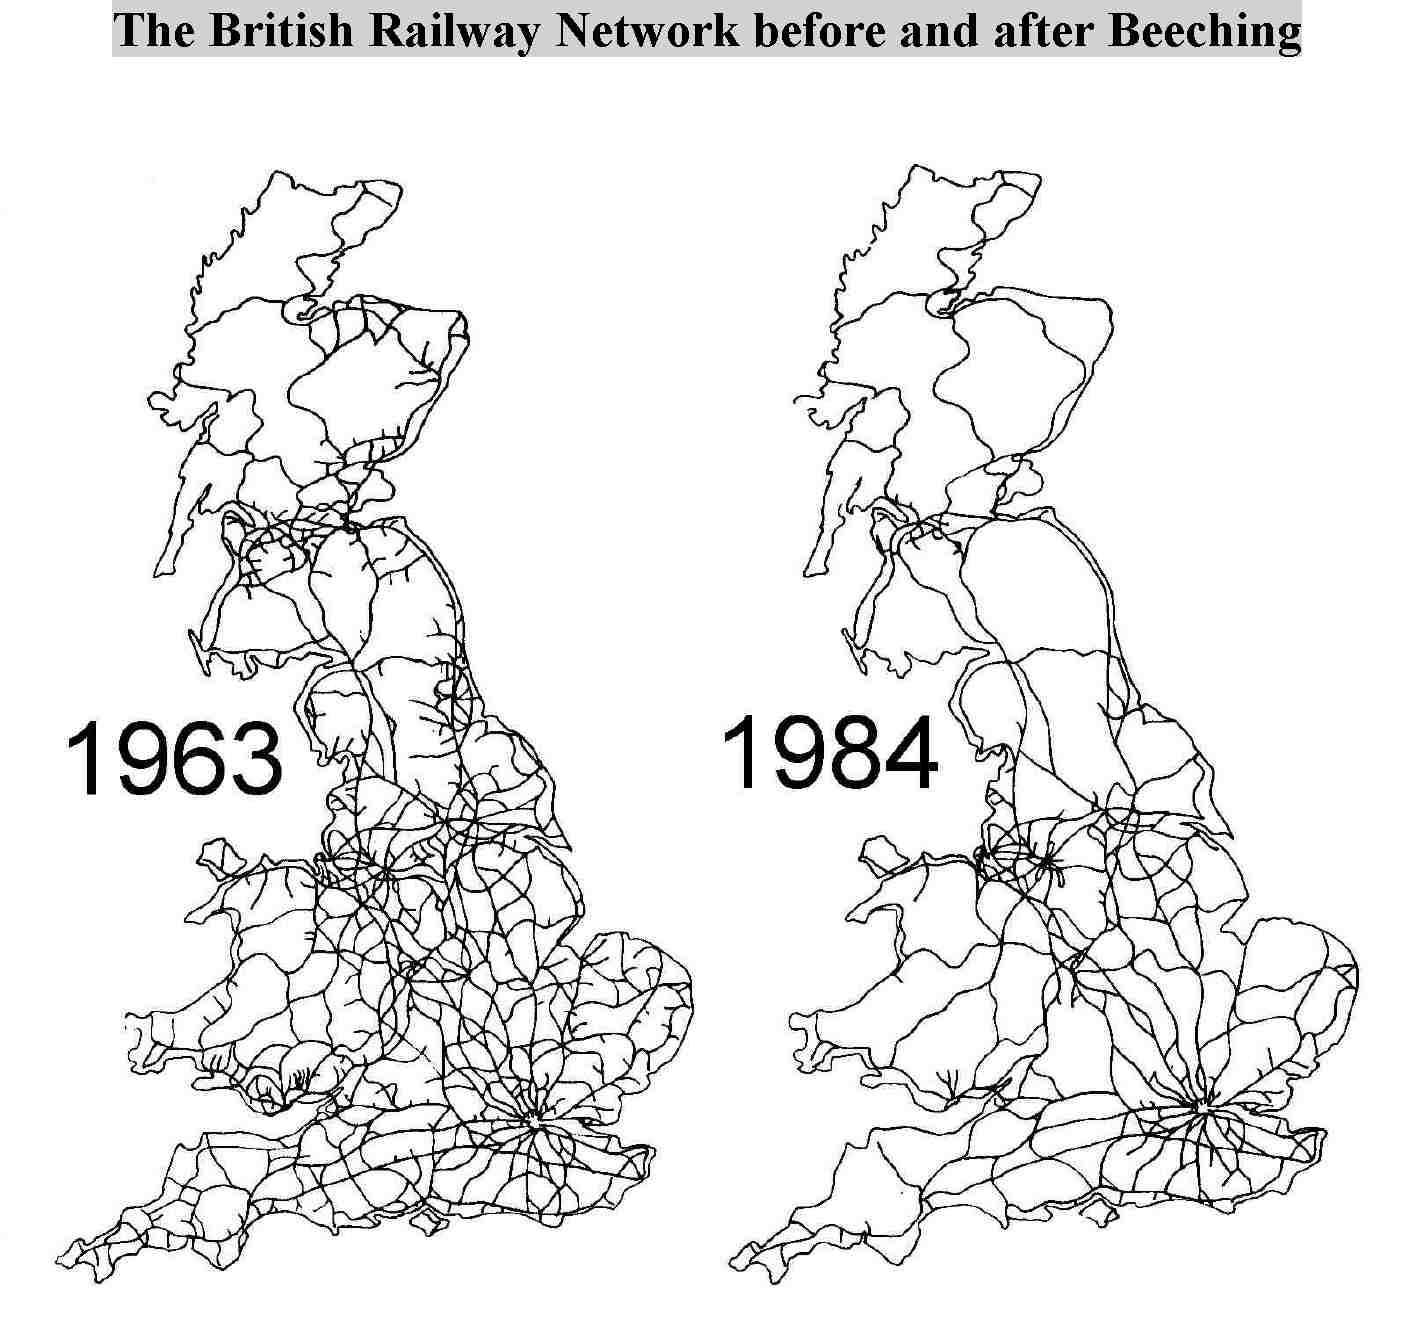 British railway network before and after Beeching